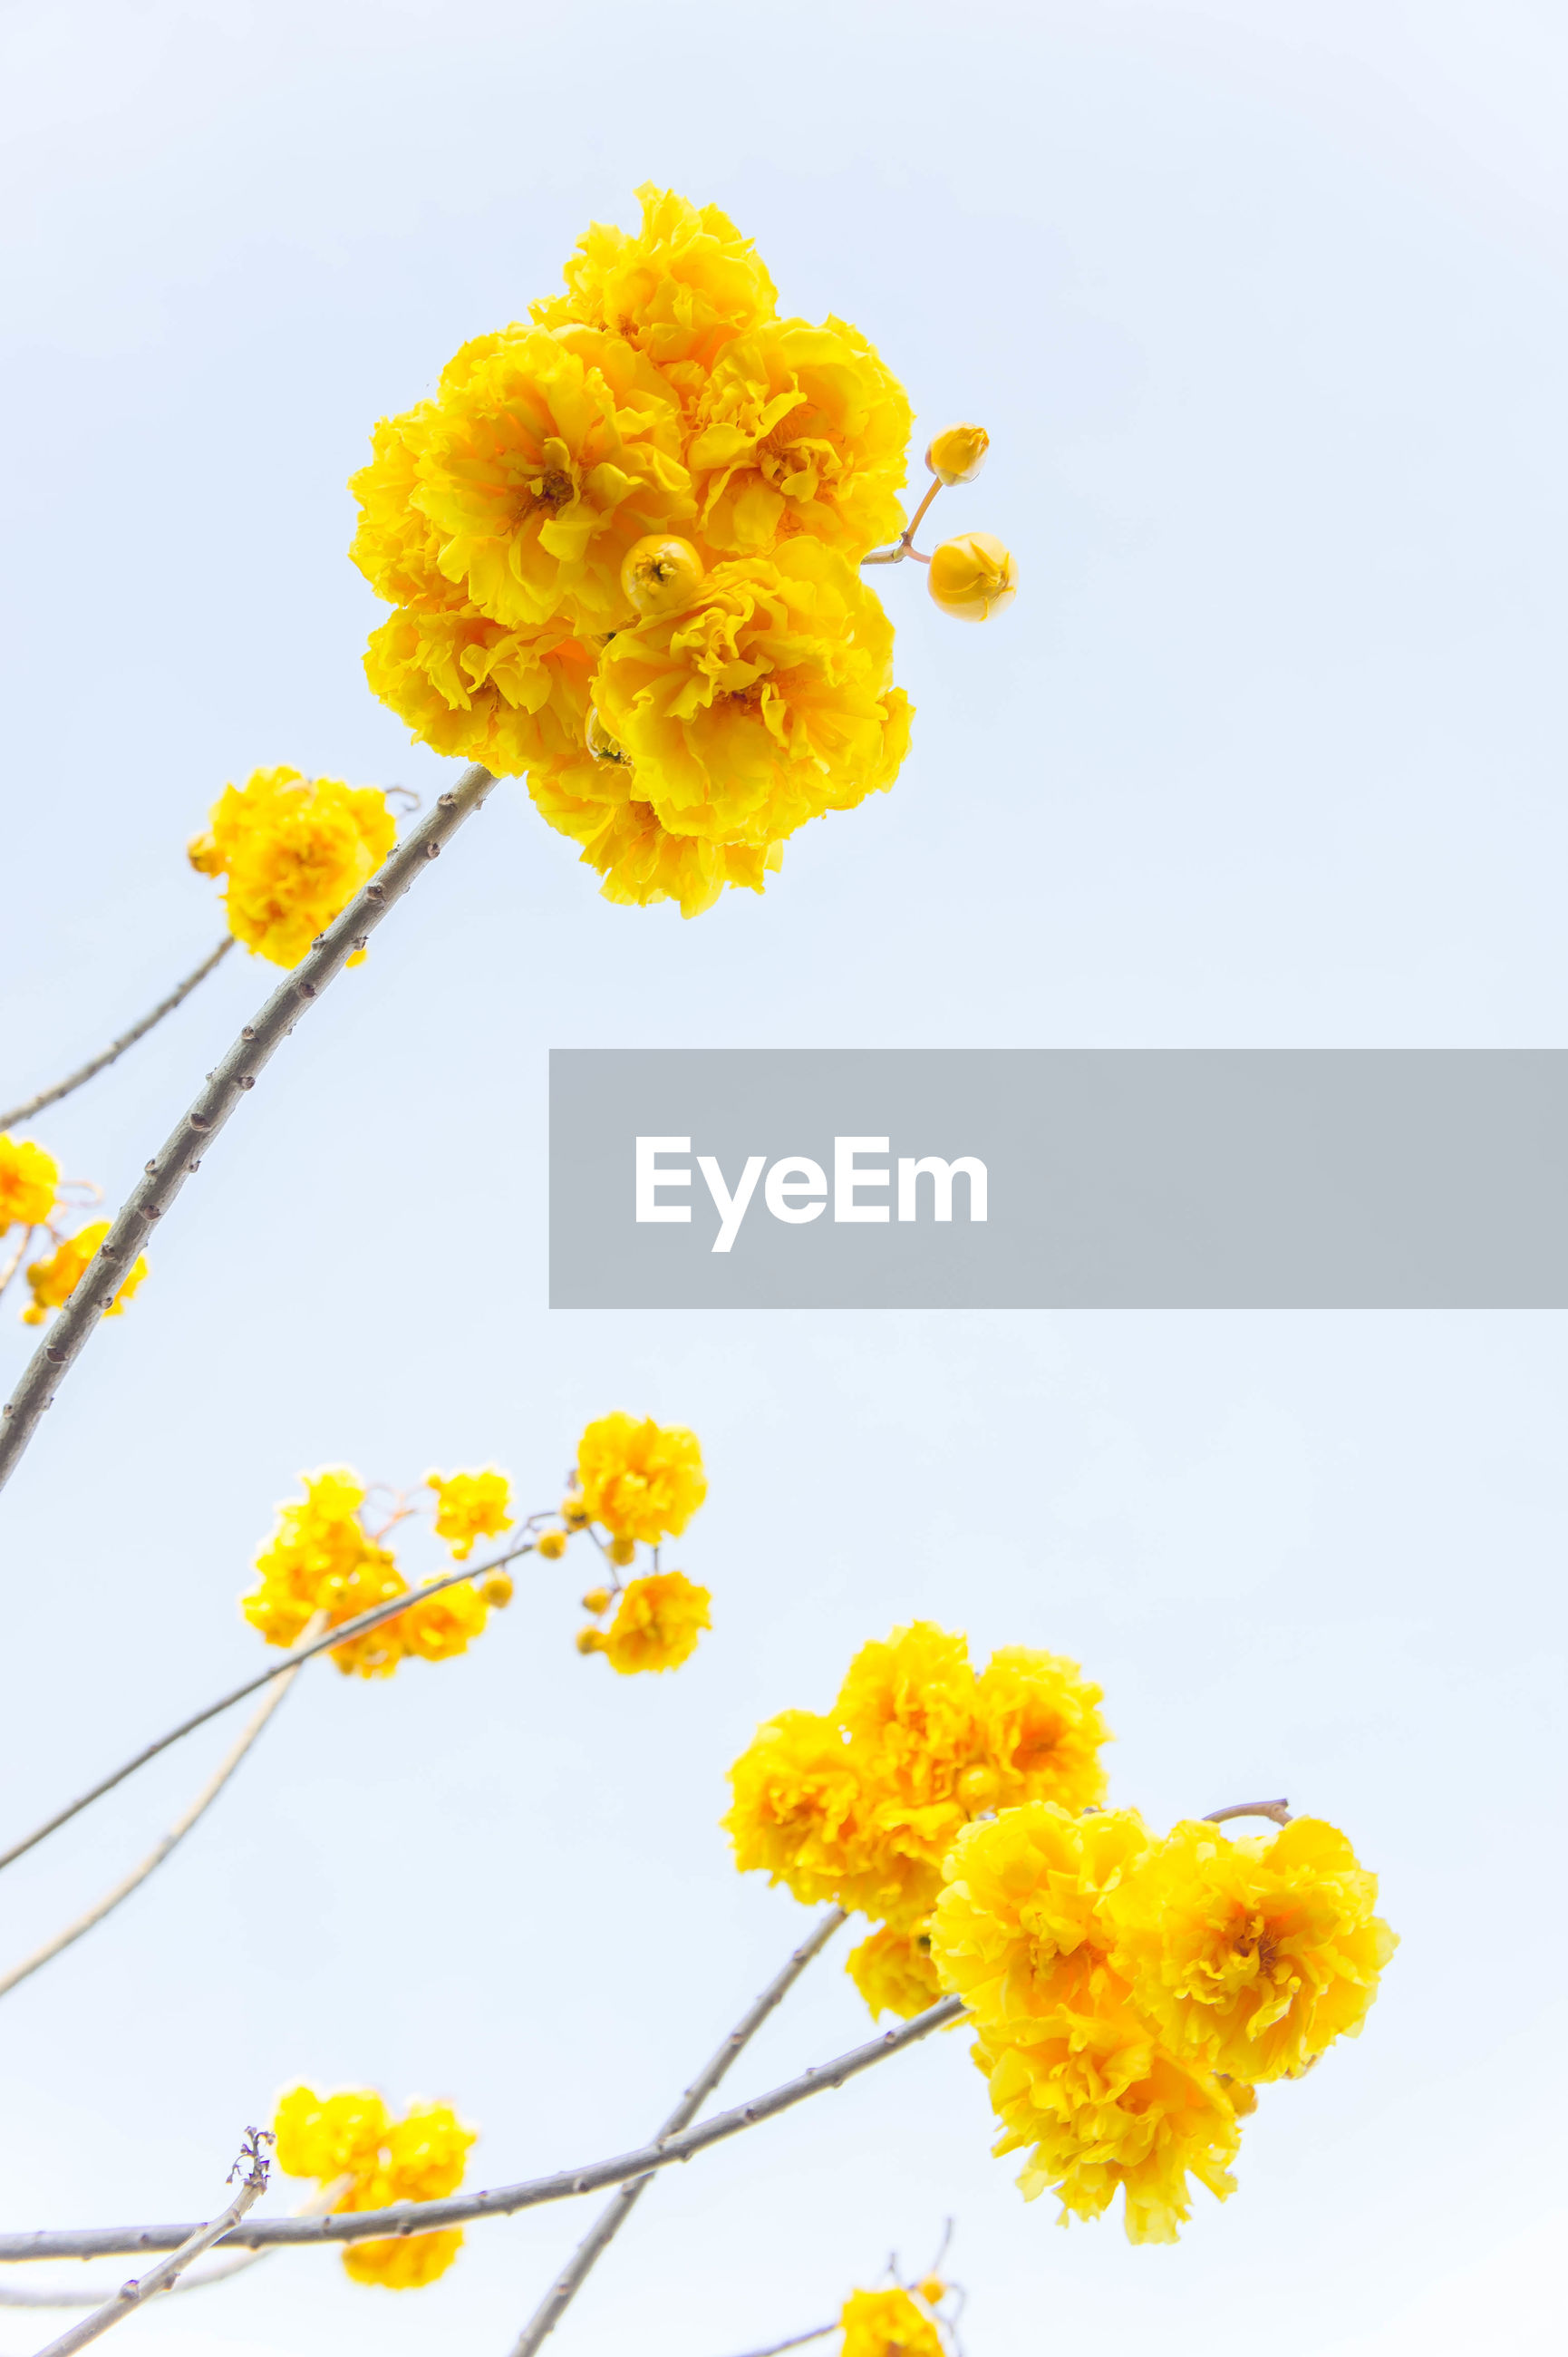 YELLOW FLOWERS BLOOMING AGAINST CLEAR SKY